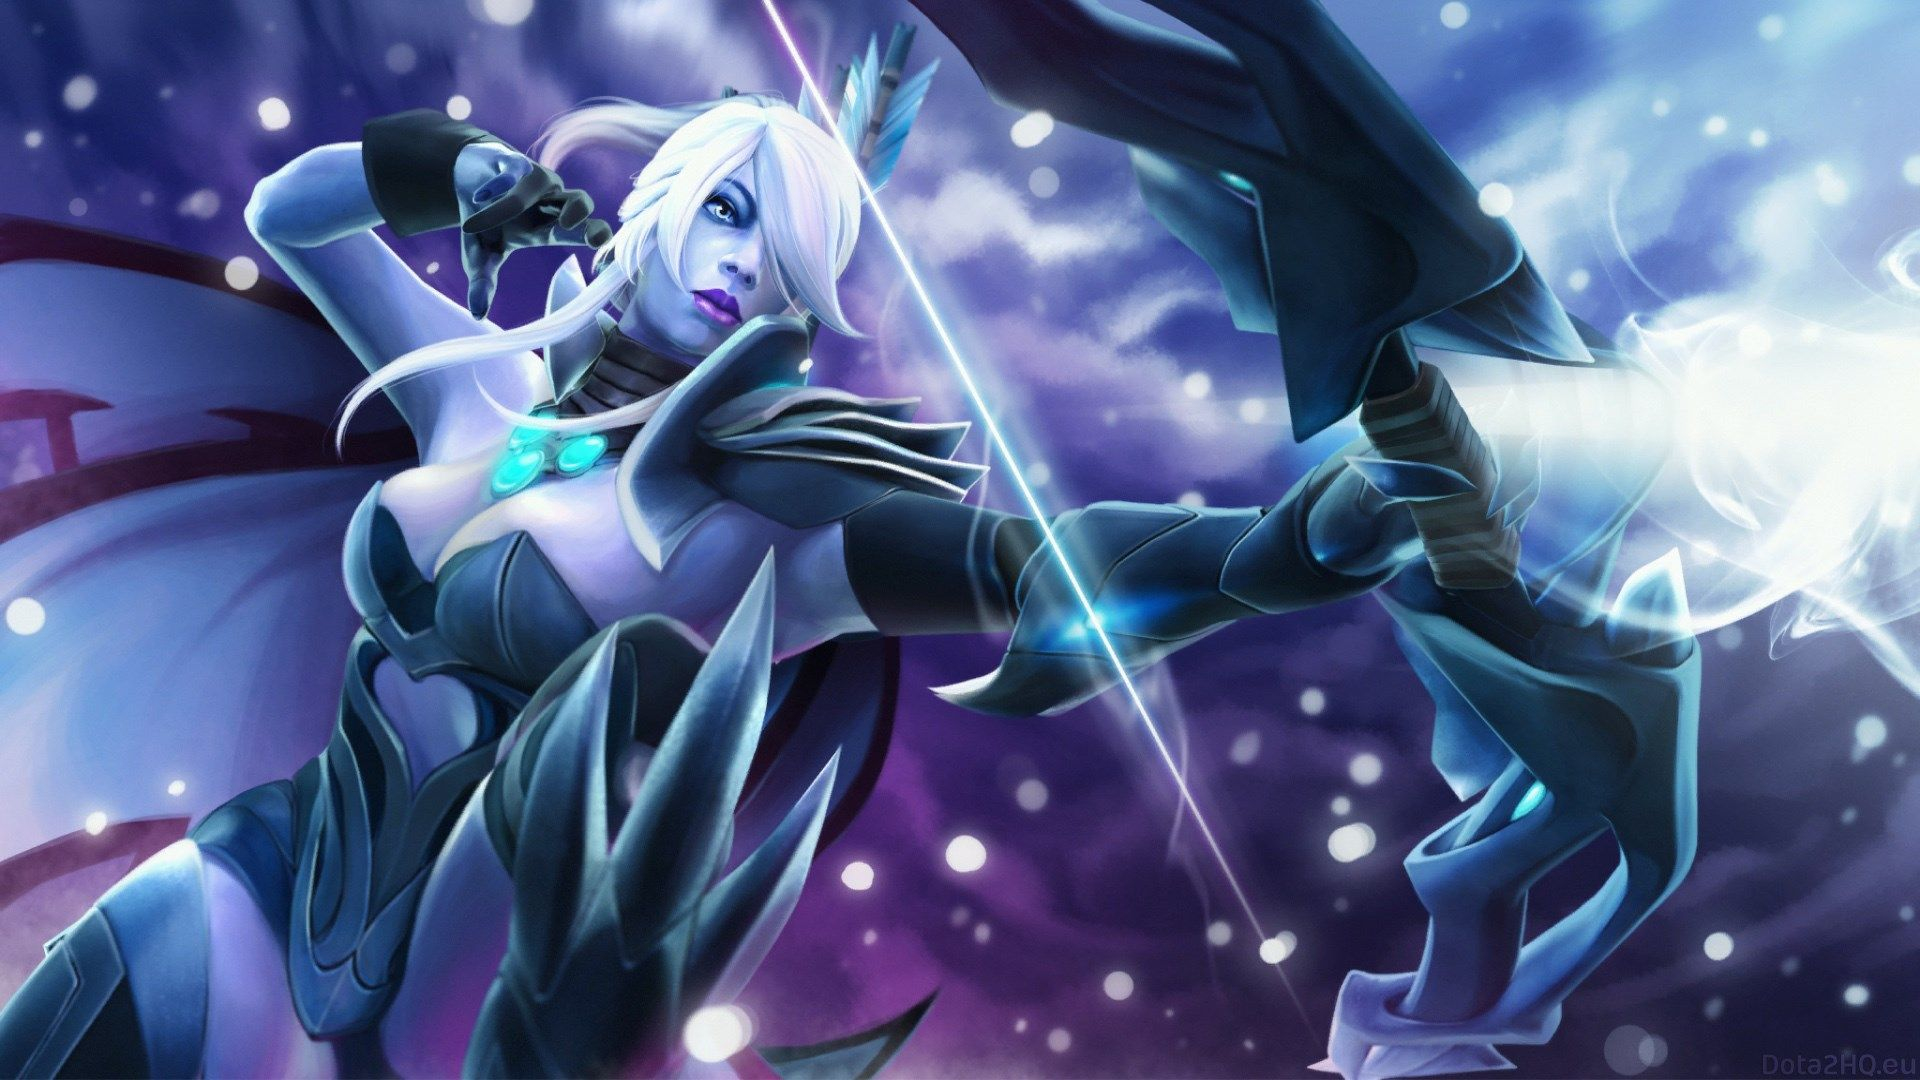 1920x1080 Drow Ranger Dota 2 Wallpaper Hd Dota2 Pinterest